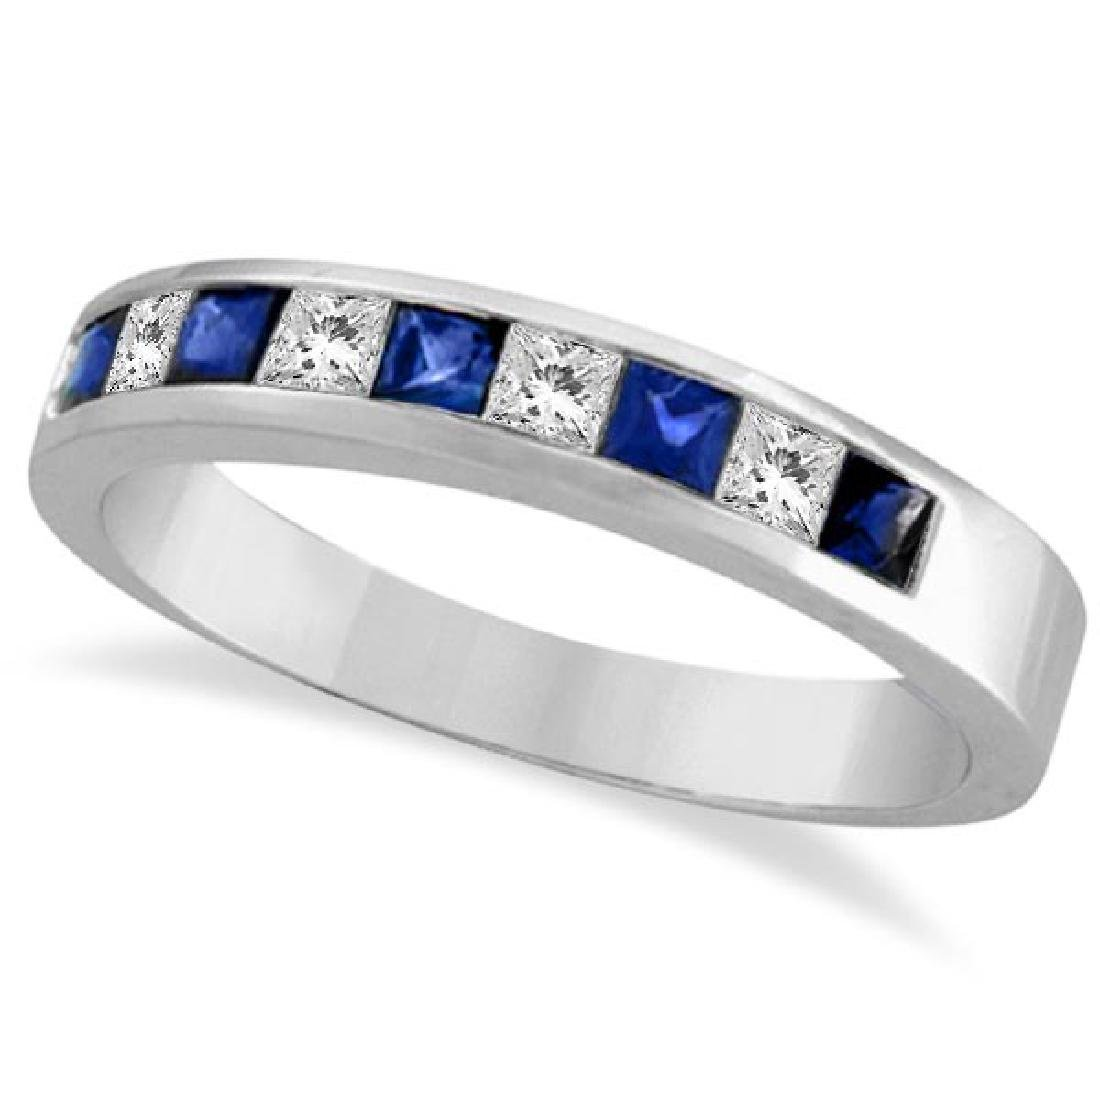 Princess-Cut Channel-Set Diamond and Sapphire Ring Band